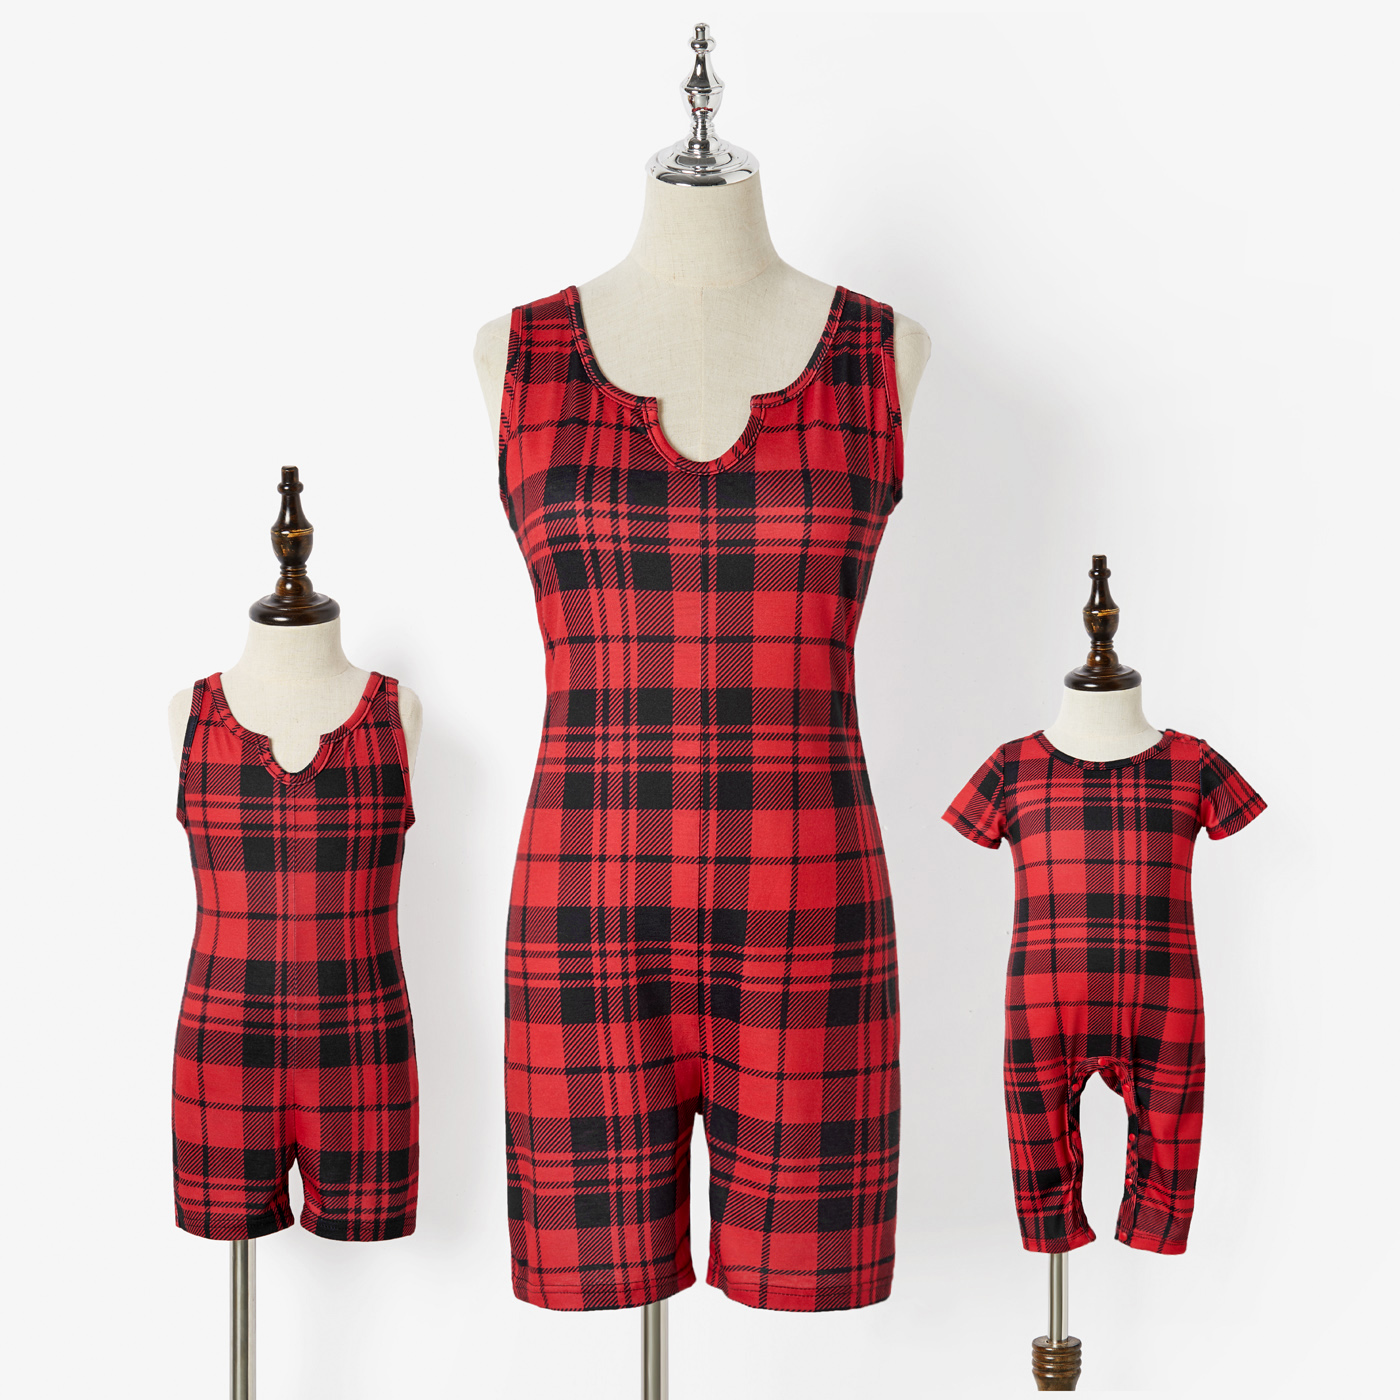 Christmas Red Plaid Stretchy Sleeveless Tank Romper Shorts for Mom and Me